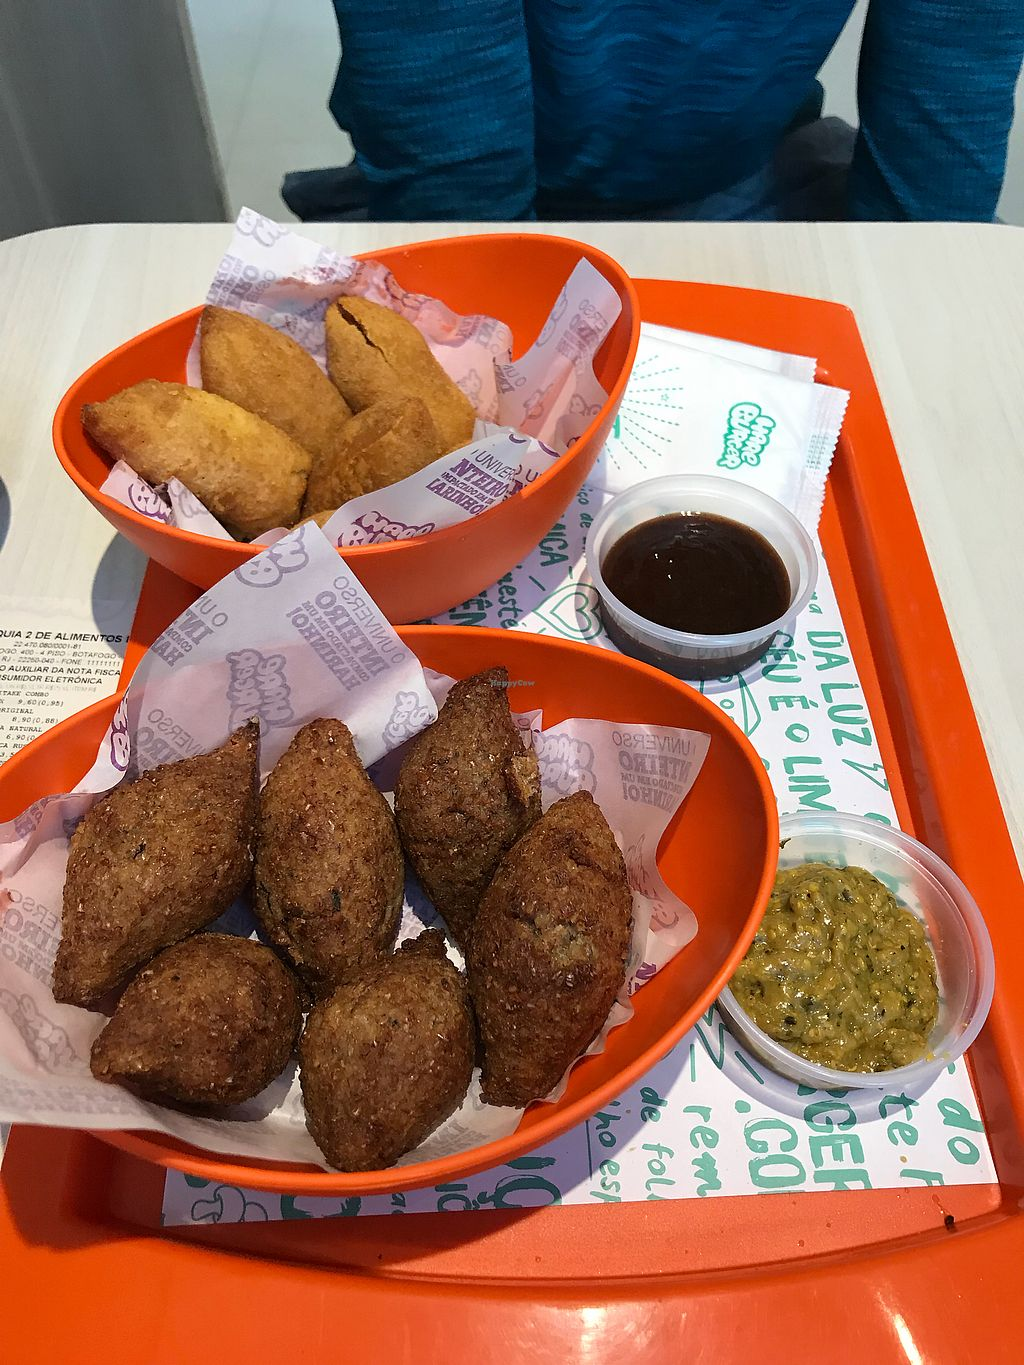 """Photo of Hareburger - Botafogo  by <a href=""""/members/profile/dazedkiwi"""">dazedkiwi</a> <br/>Snacks <br/> October 19, 2017  - <a href='/contact/abuse/image/79582/316609'>Report</a>"""